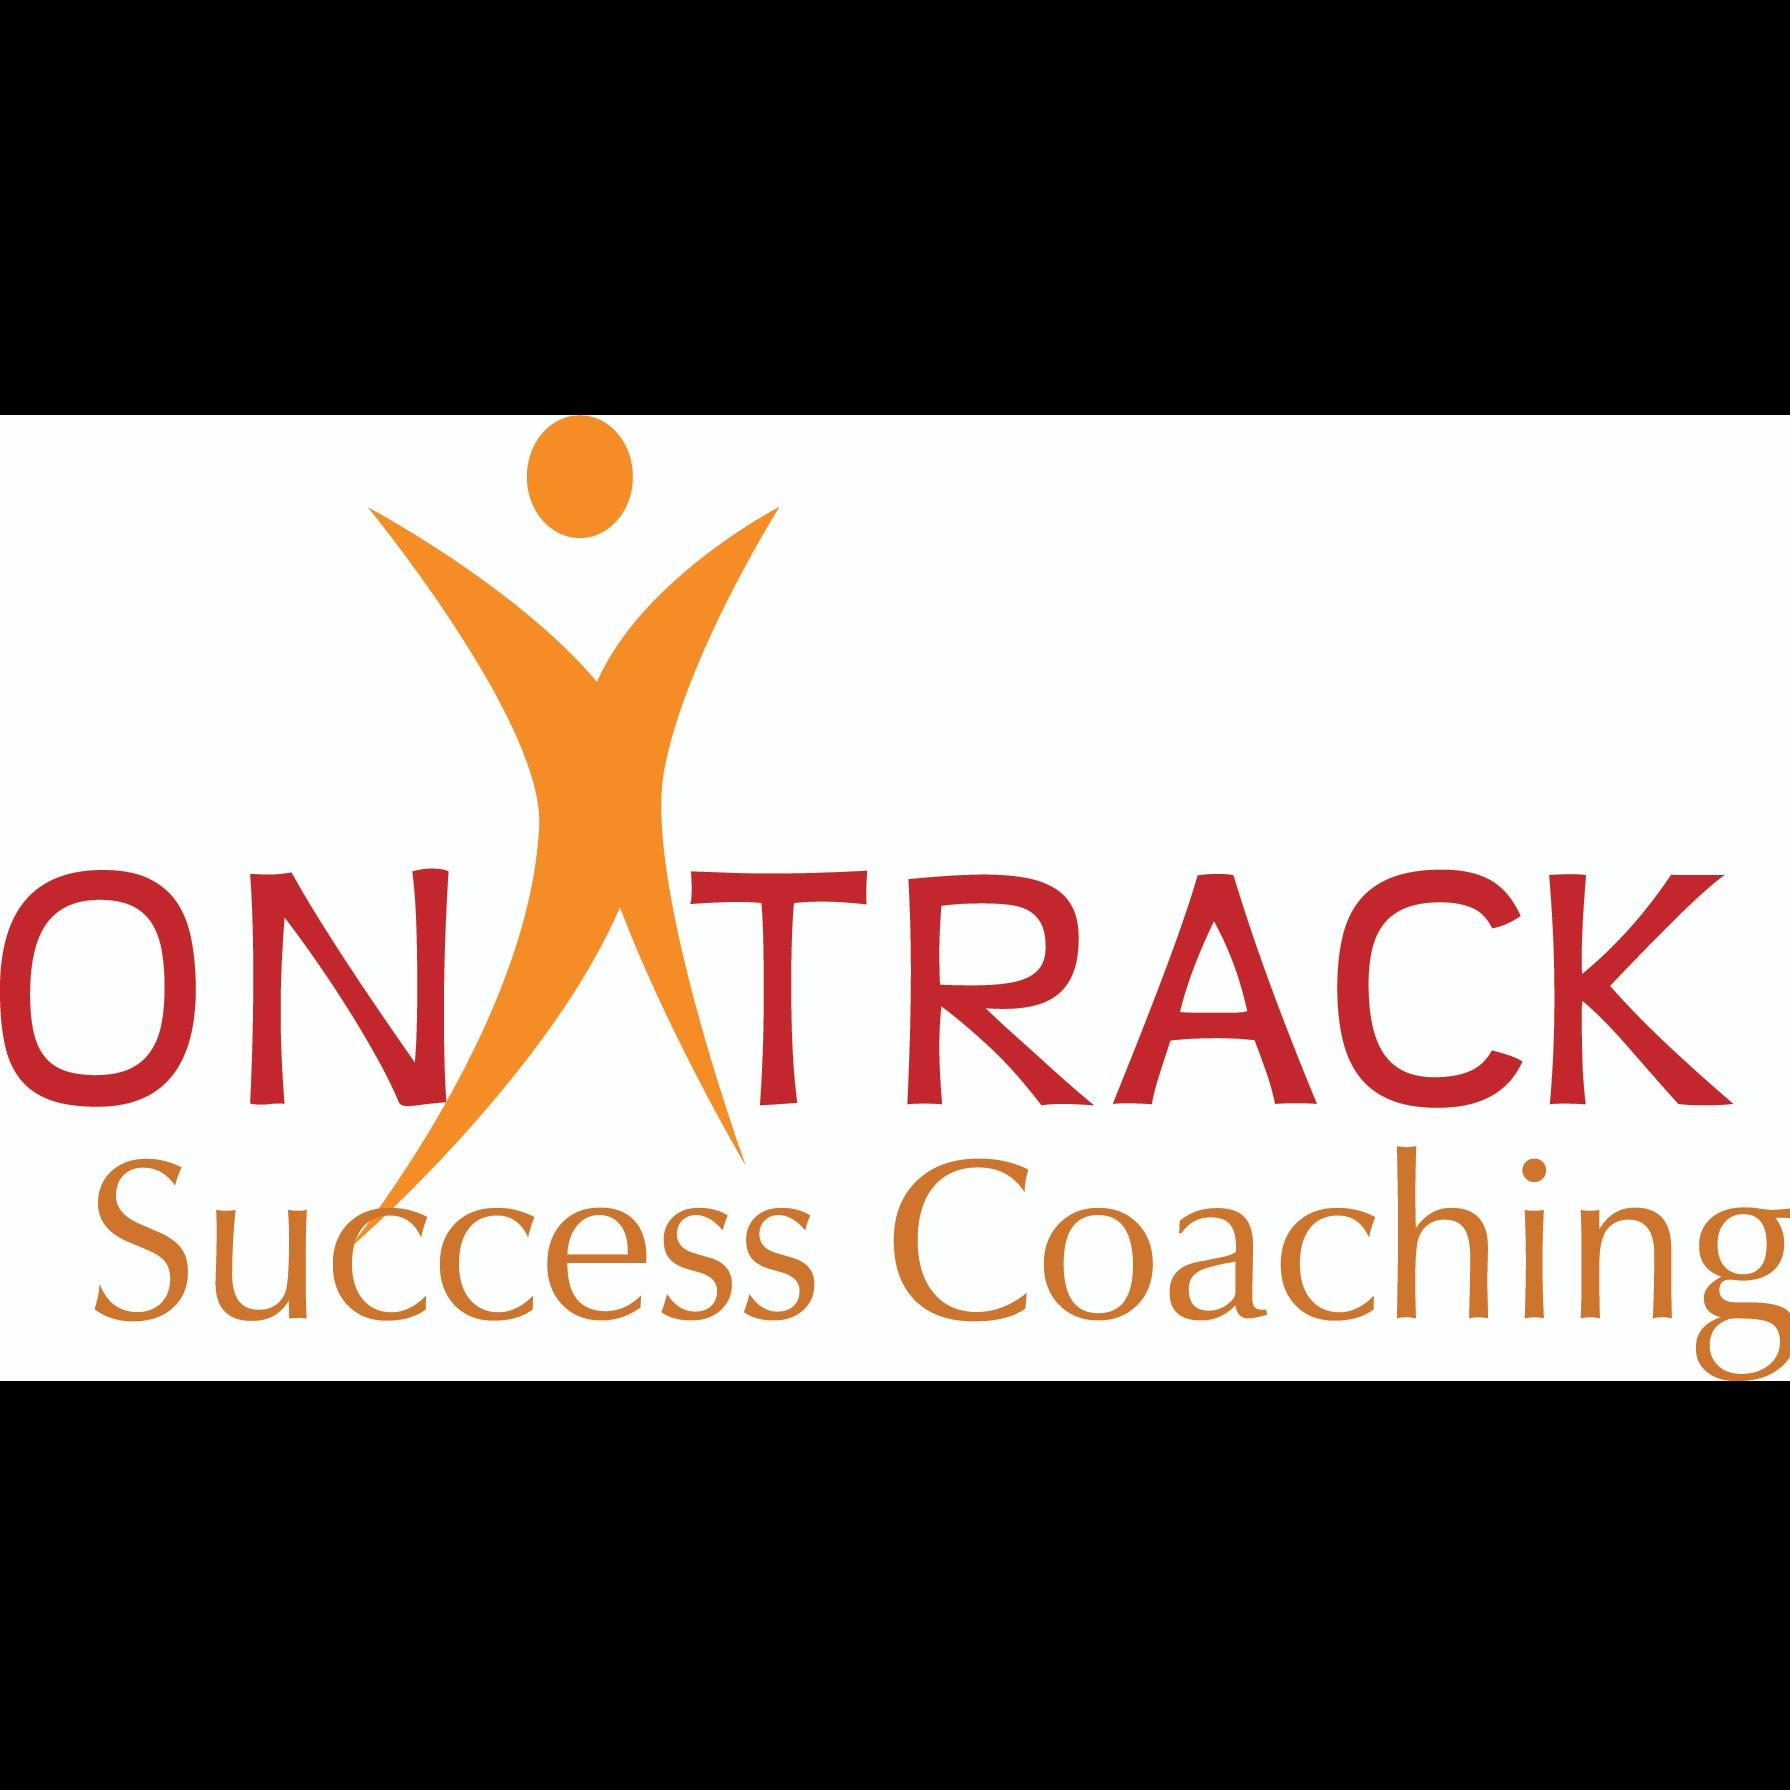 On Track Success Coaching